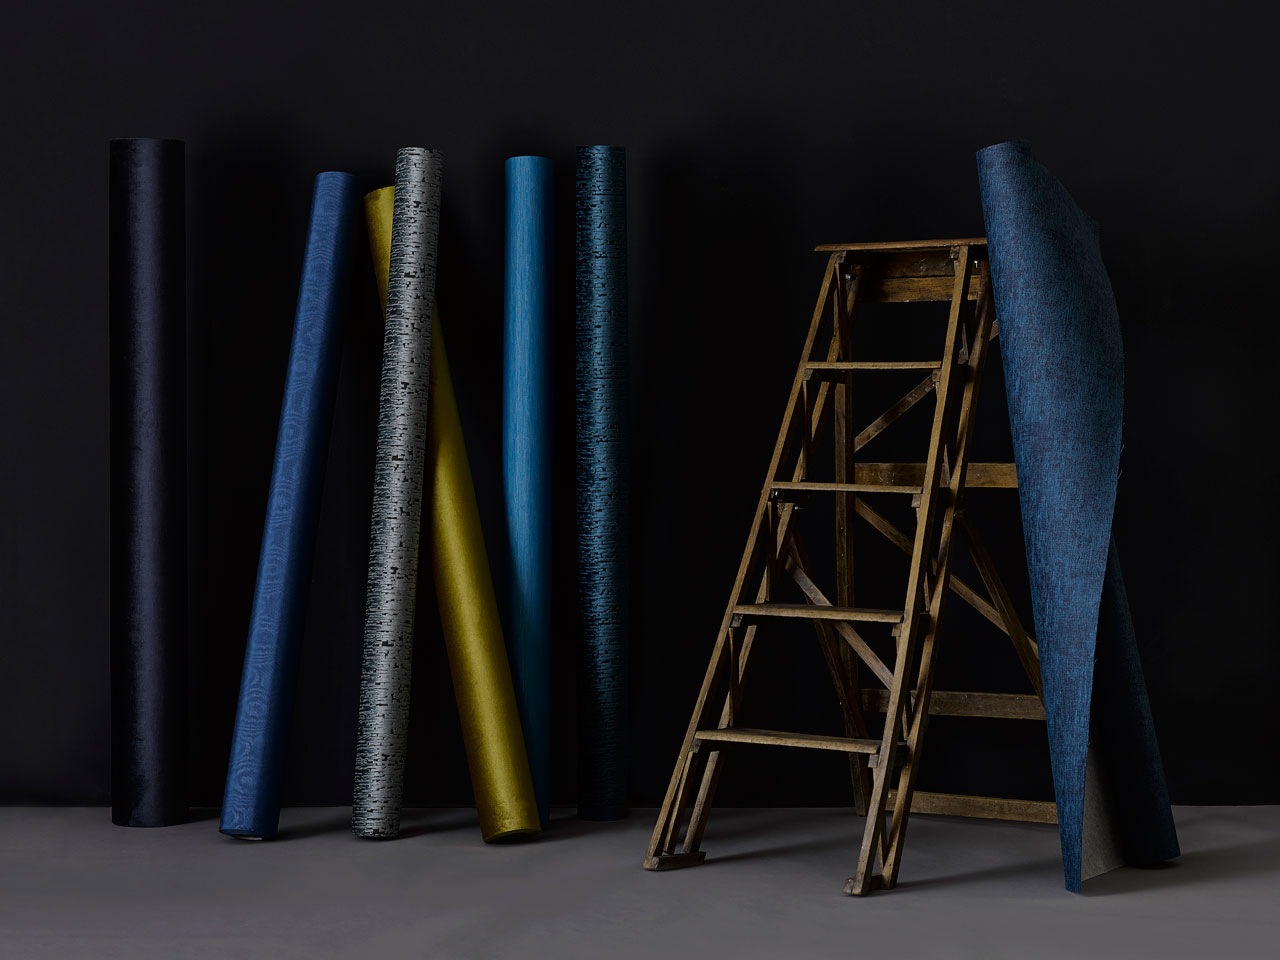 The new Urban Elegance Collection of wall textiles designed by Nicolette Brunklaus for Dutch Wall Textile Company (DWC).